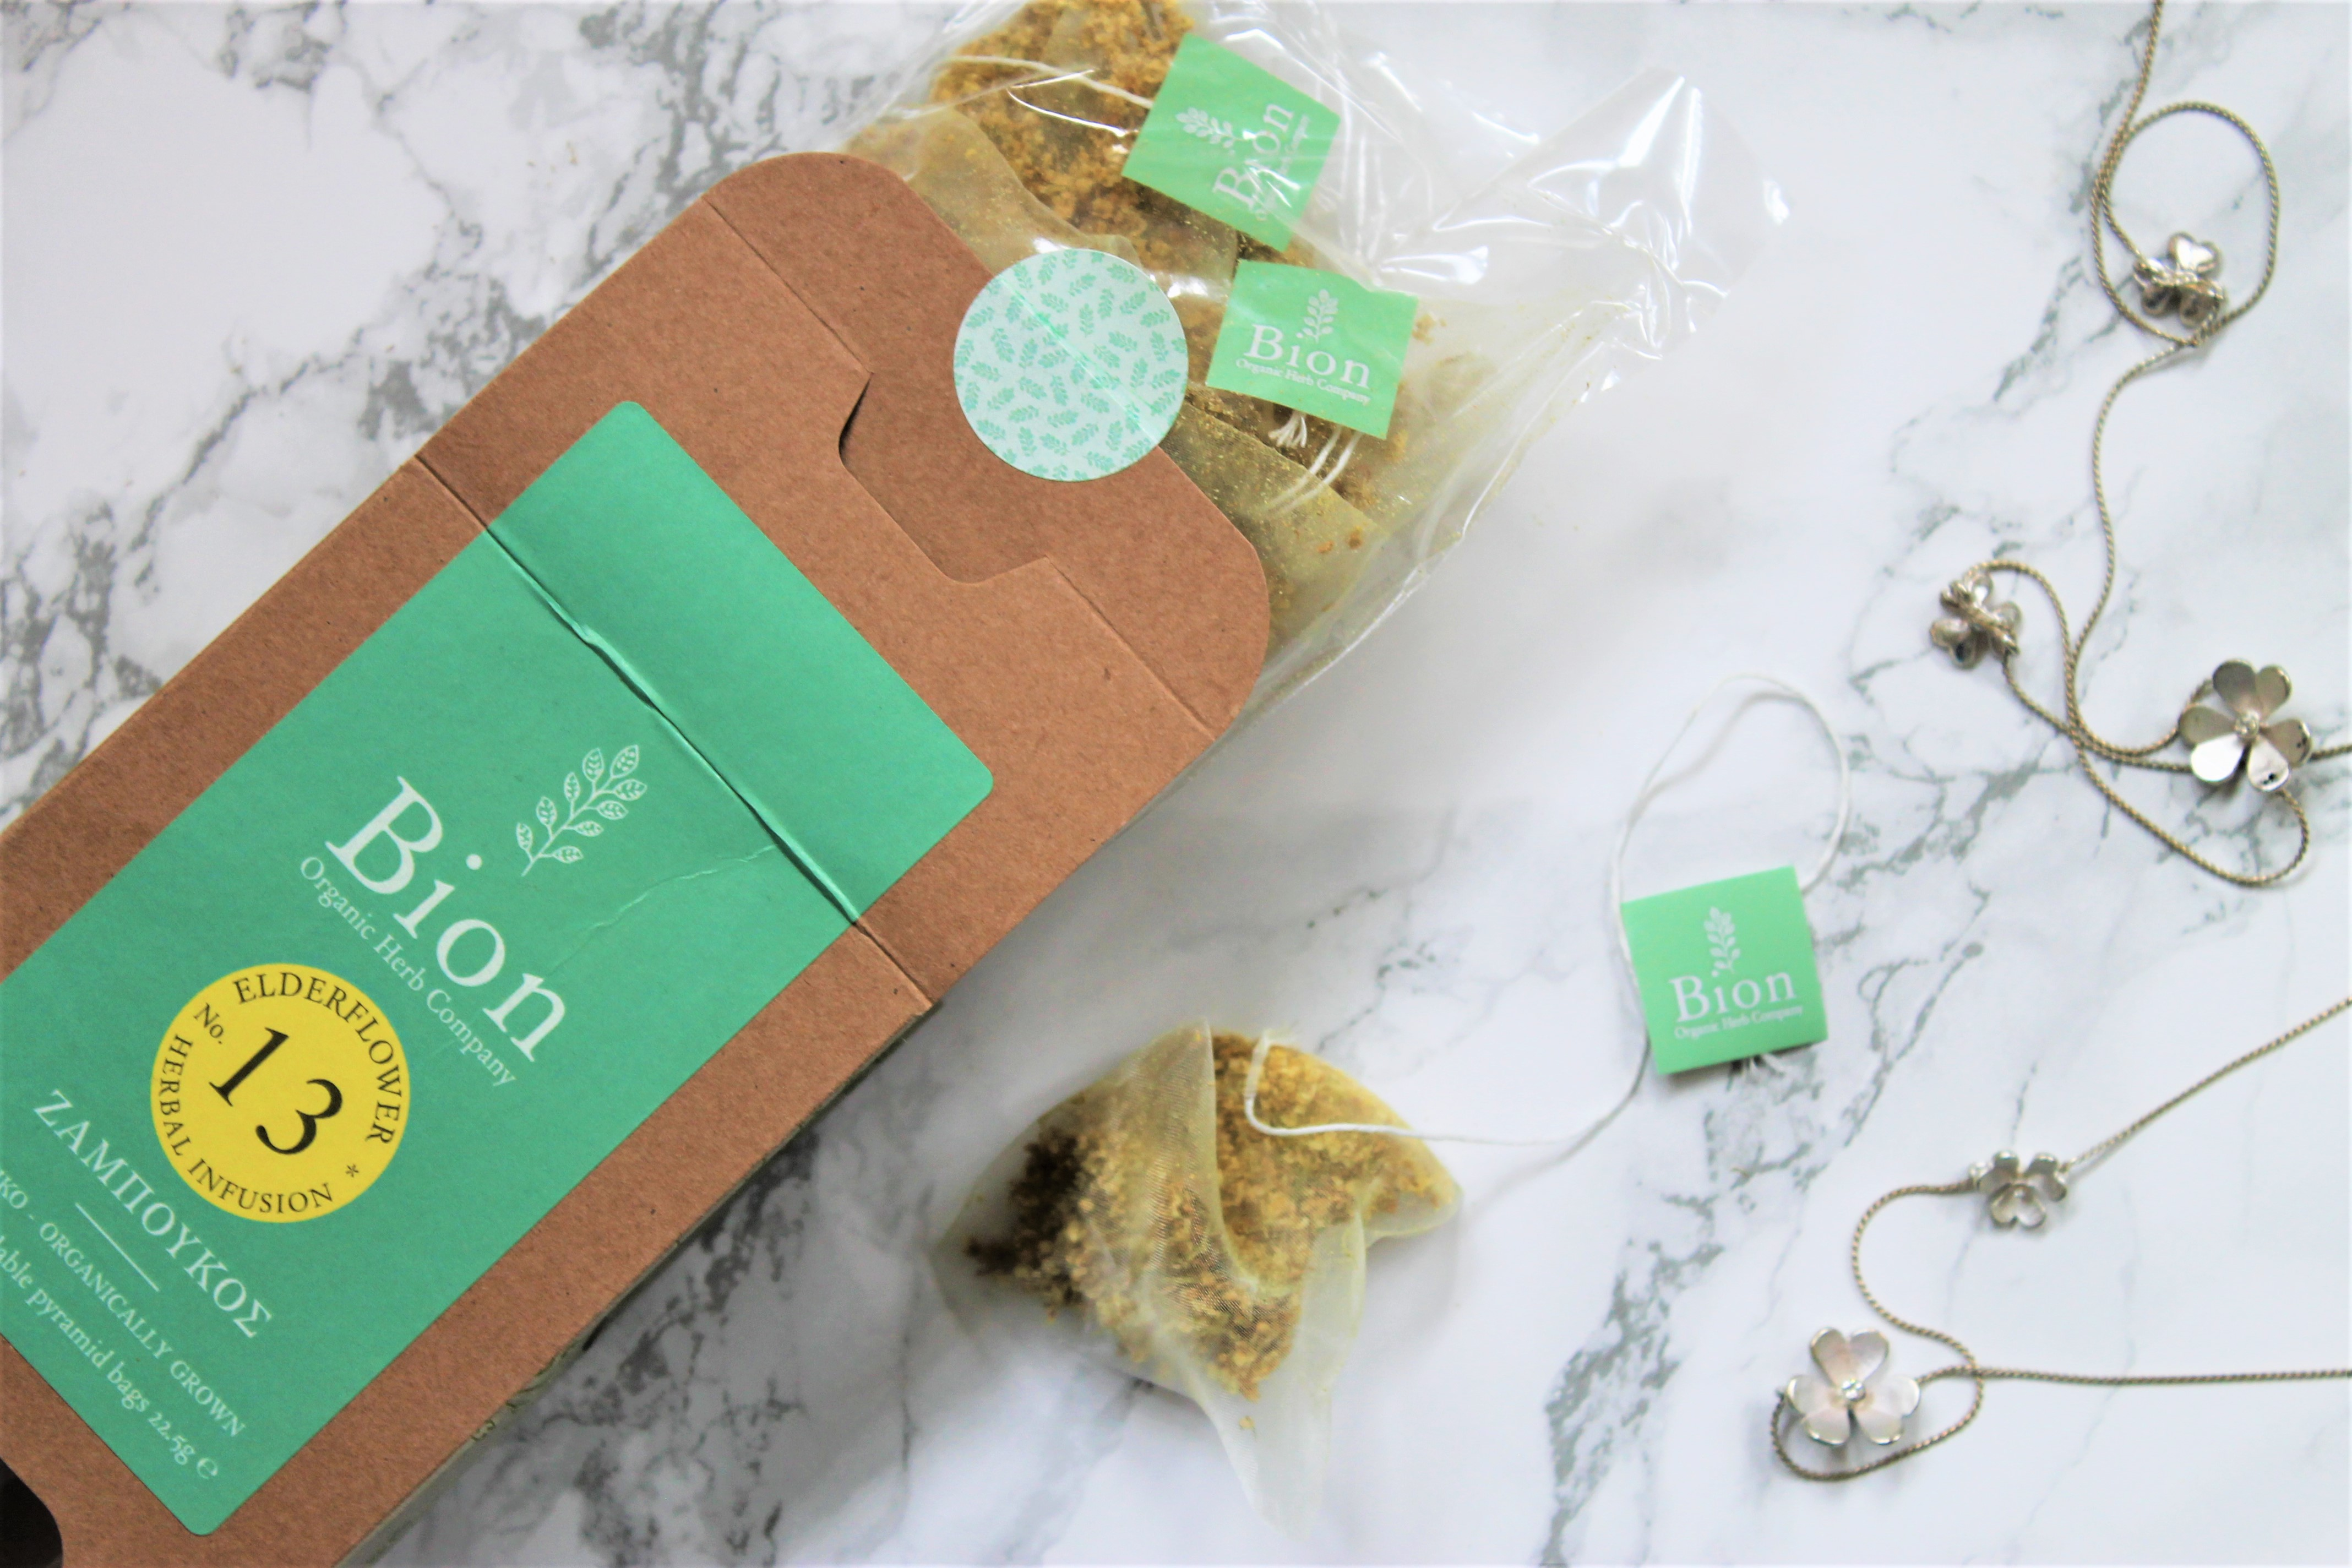 elderflower tea bags